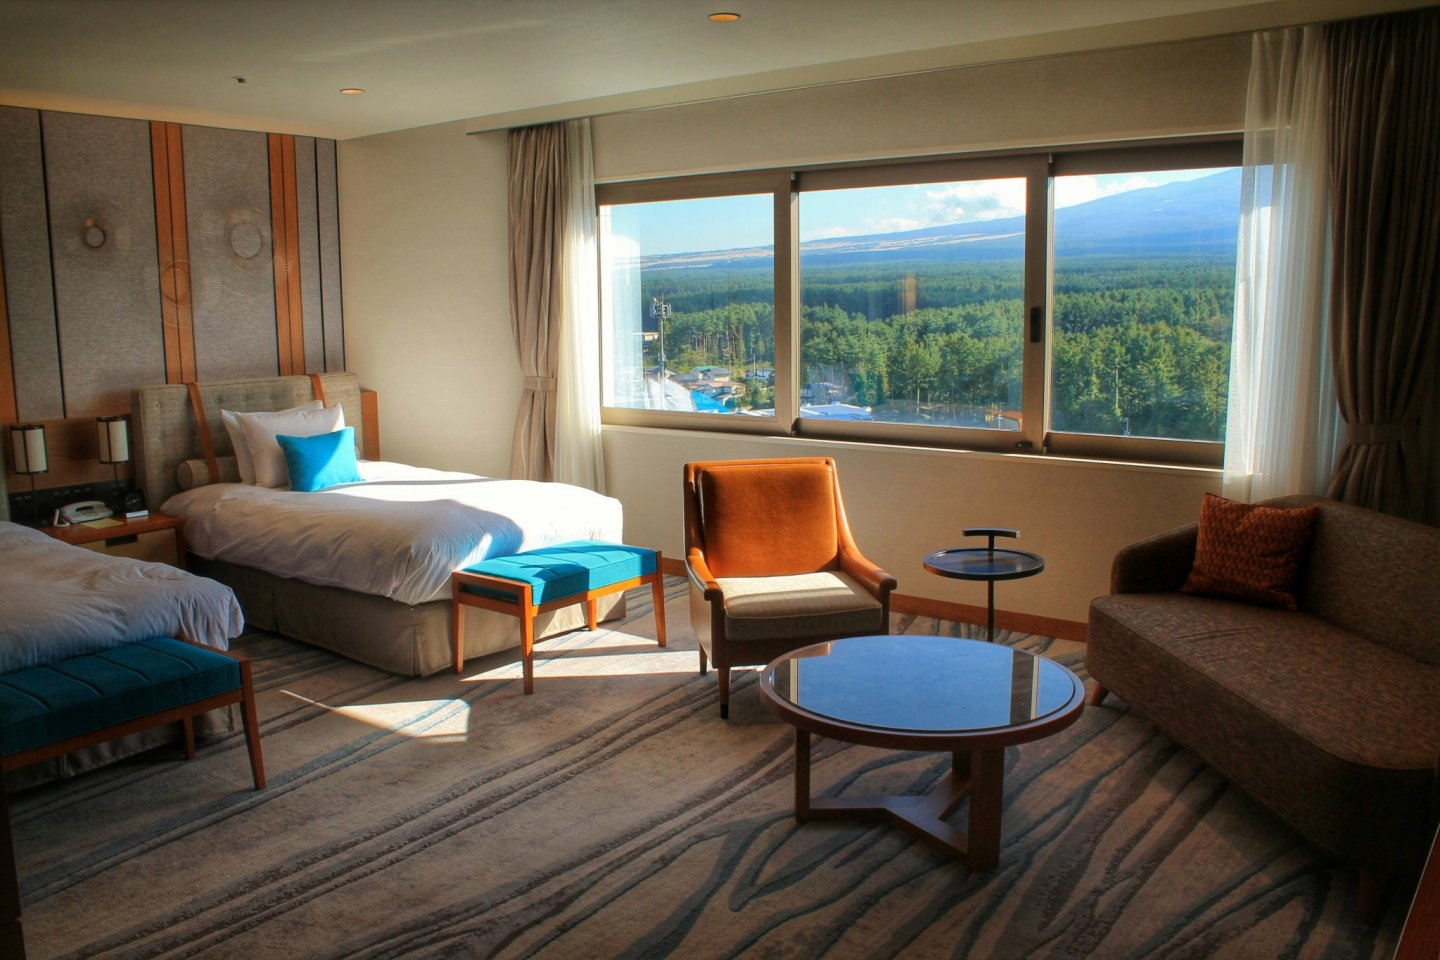 The interior of the Grand Executive Floor is designed to match the nature outside